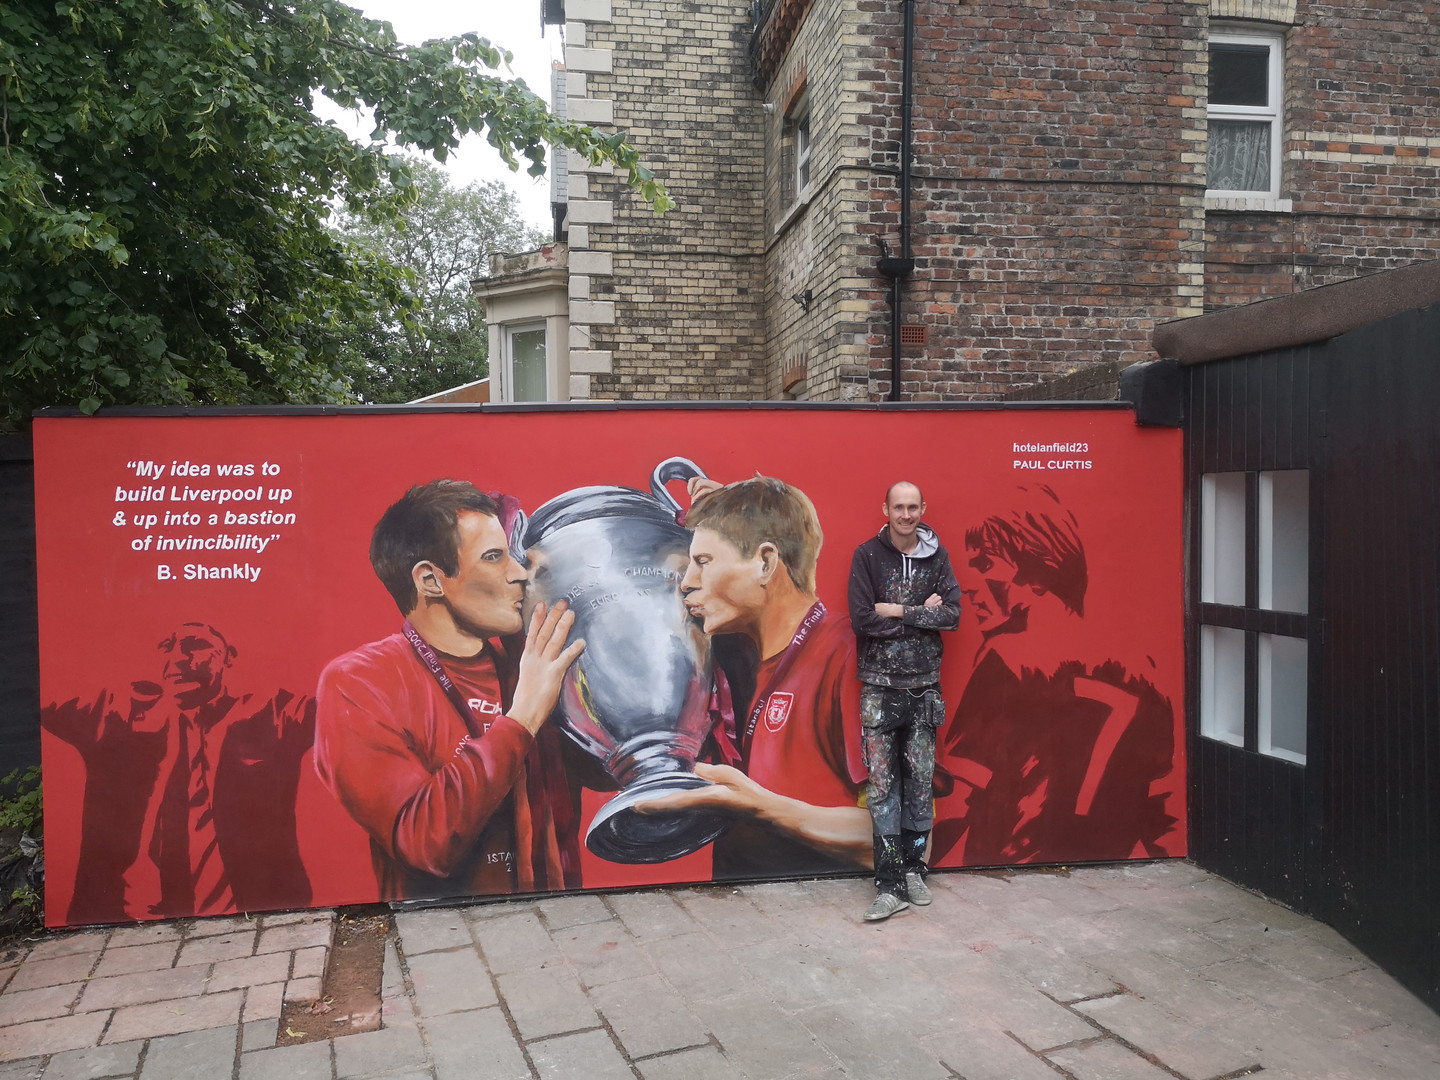 Gerrard and Carra mural